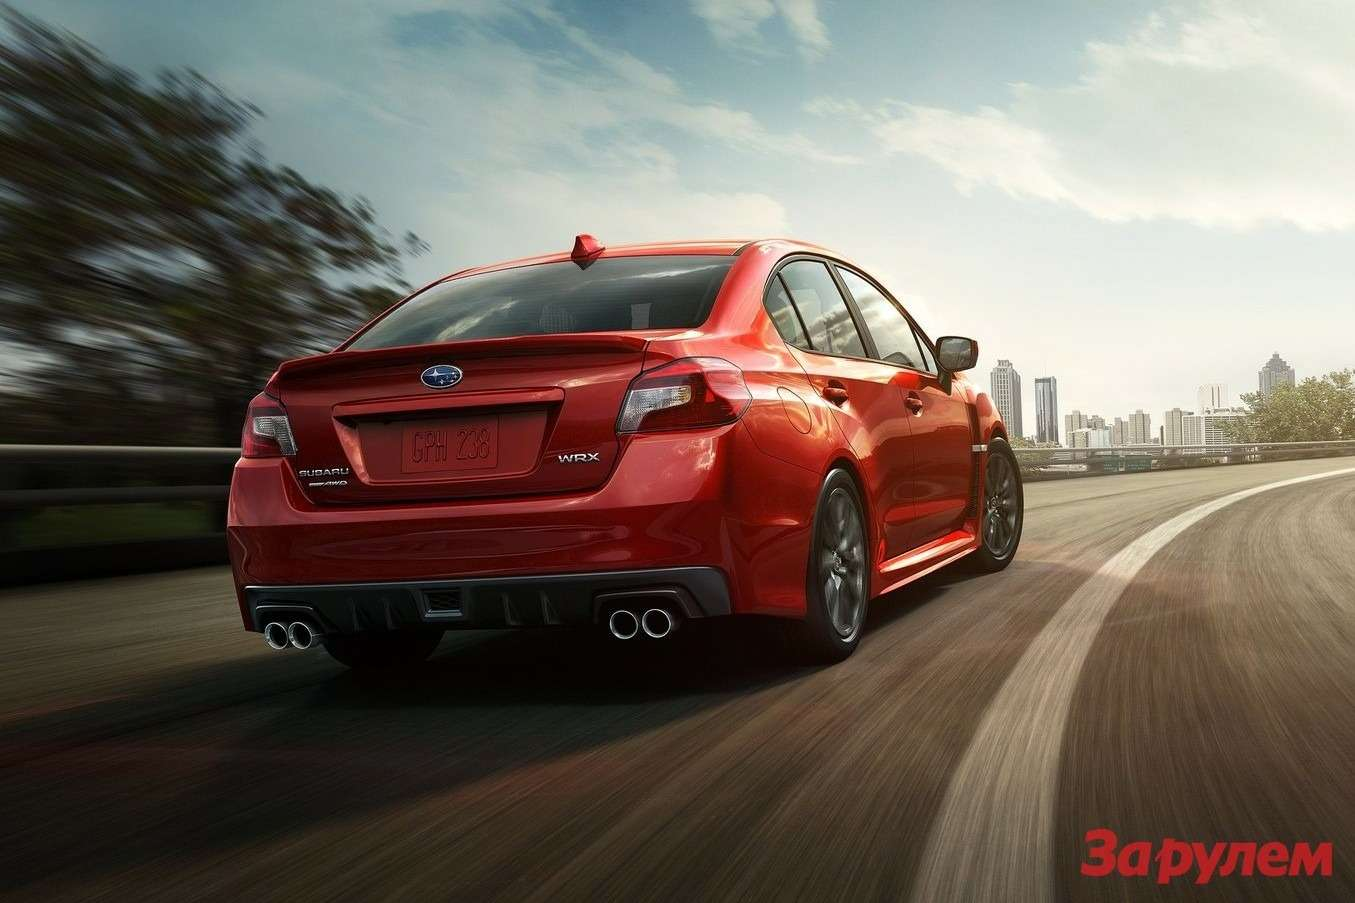 Subaru-WRX_2015_1600x1200_wallpaper_07